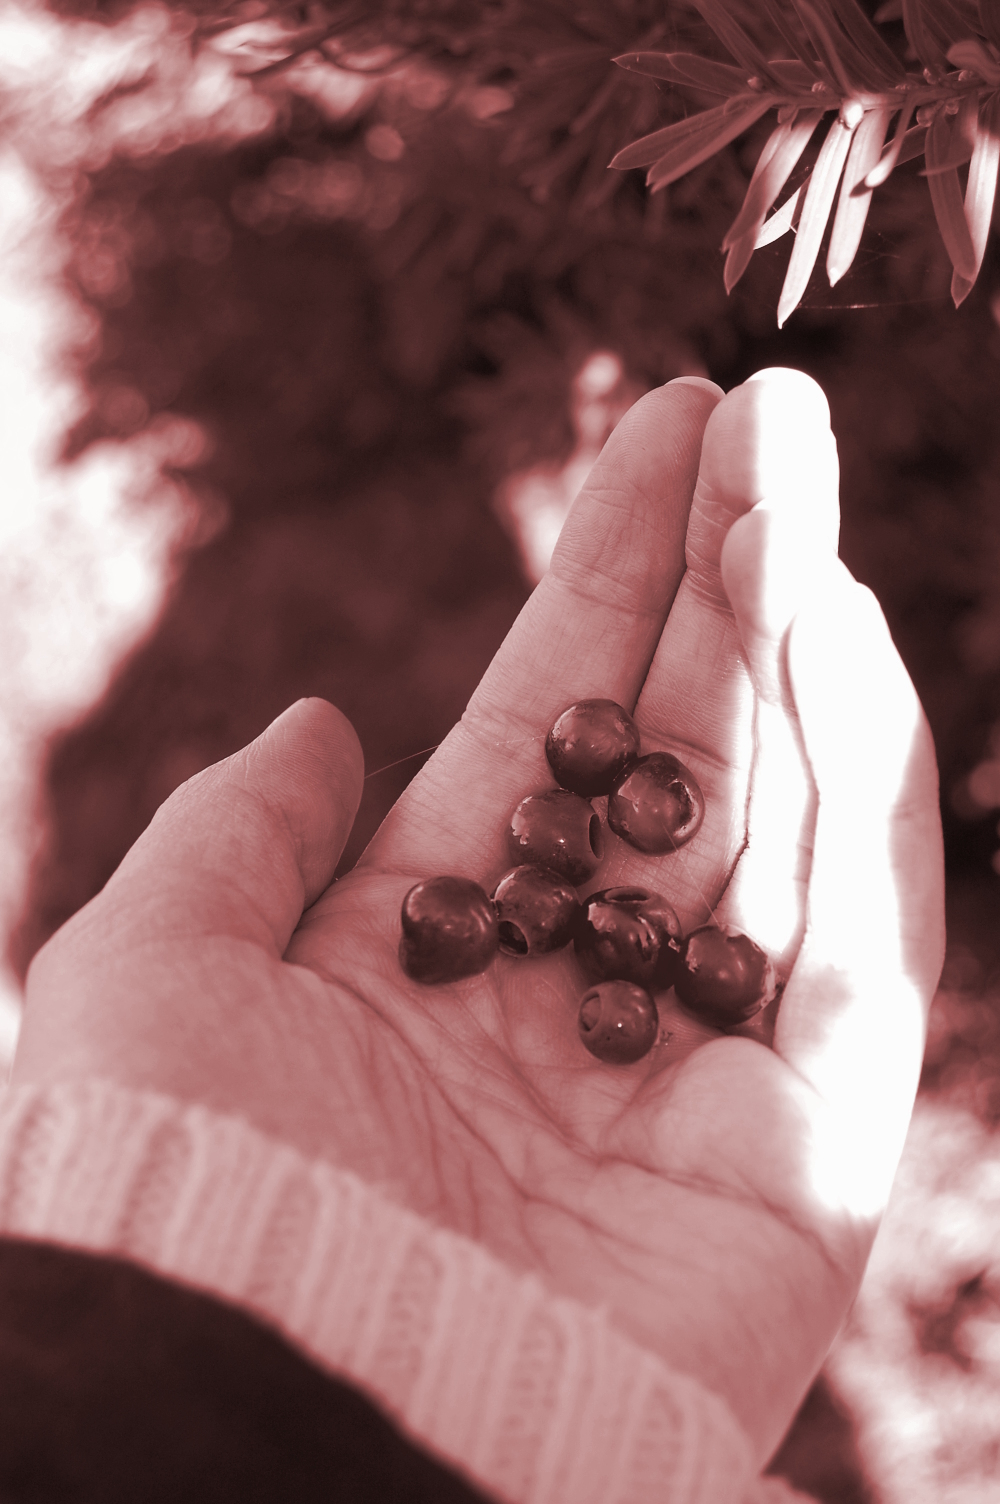 Yew tree berries in a hand